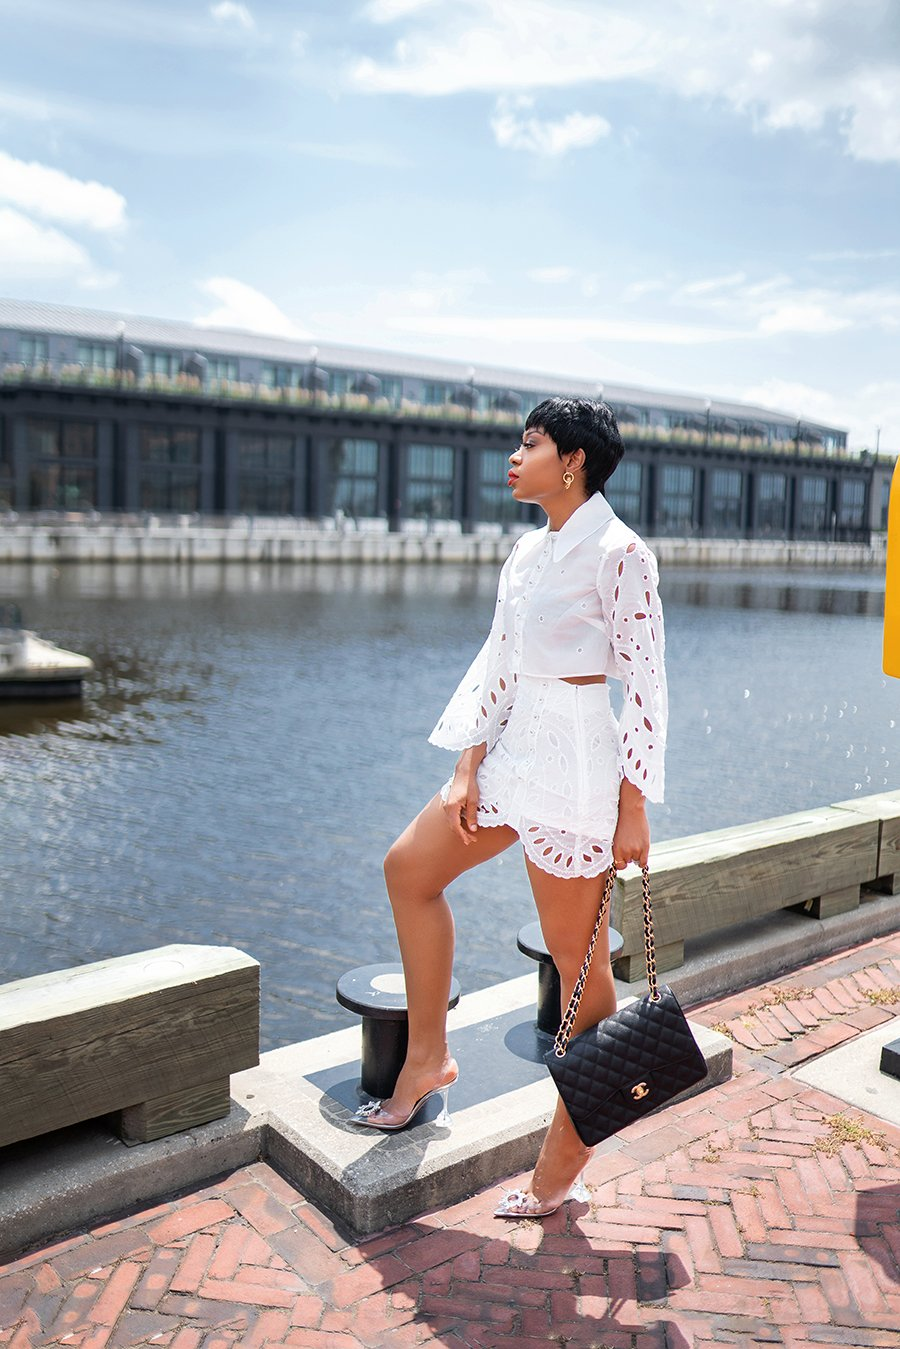 stella-adewunmi-of-jadore-fashion-blog-shares-summer-white-outfit-summer-date-style